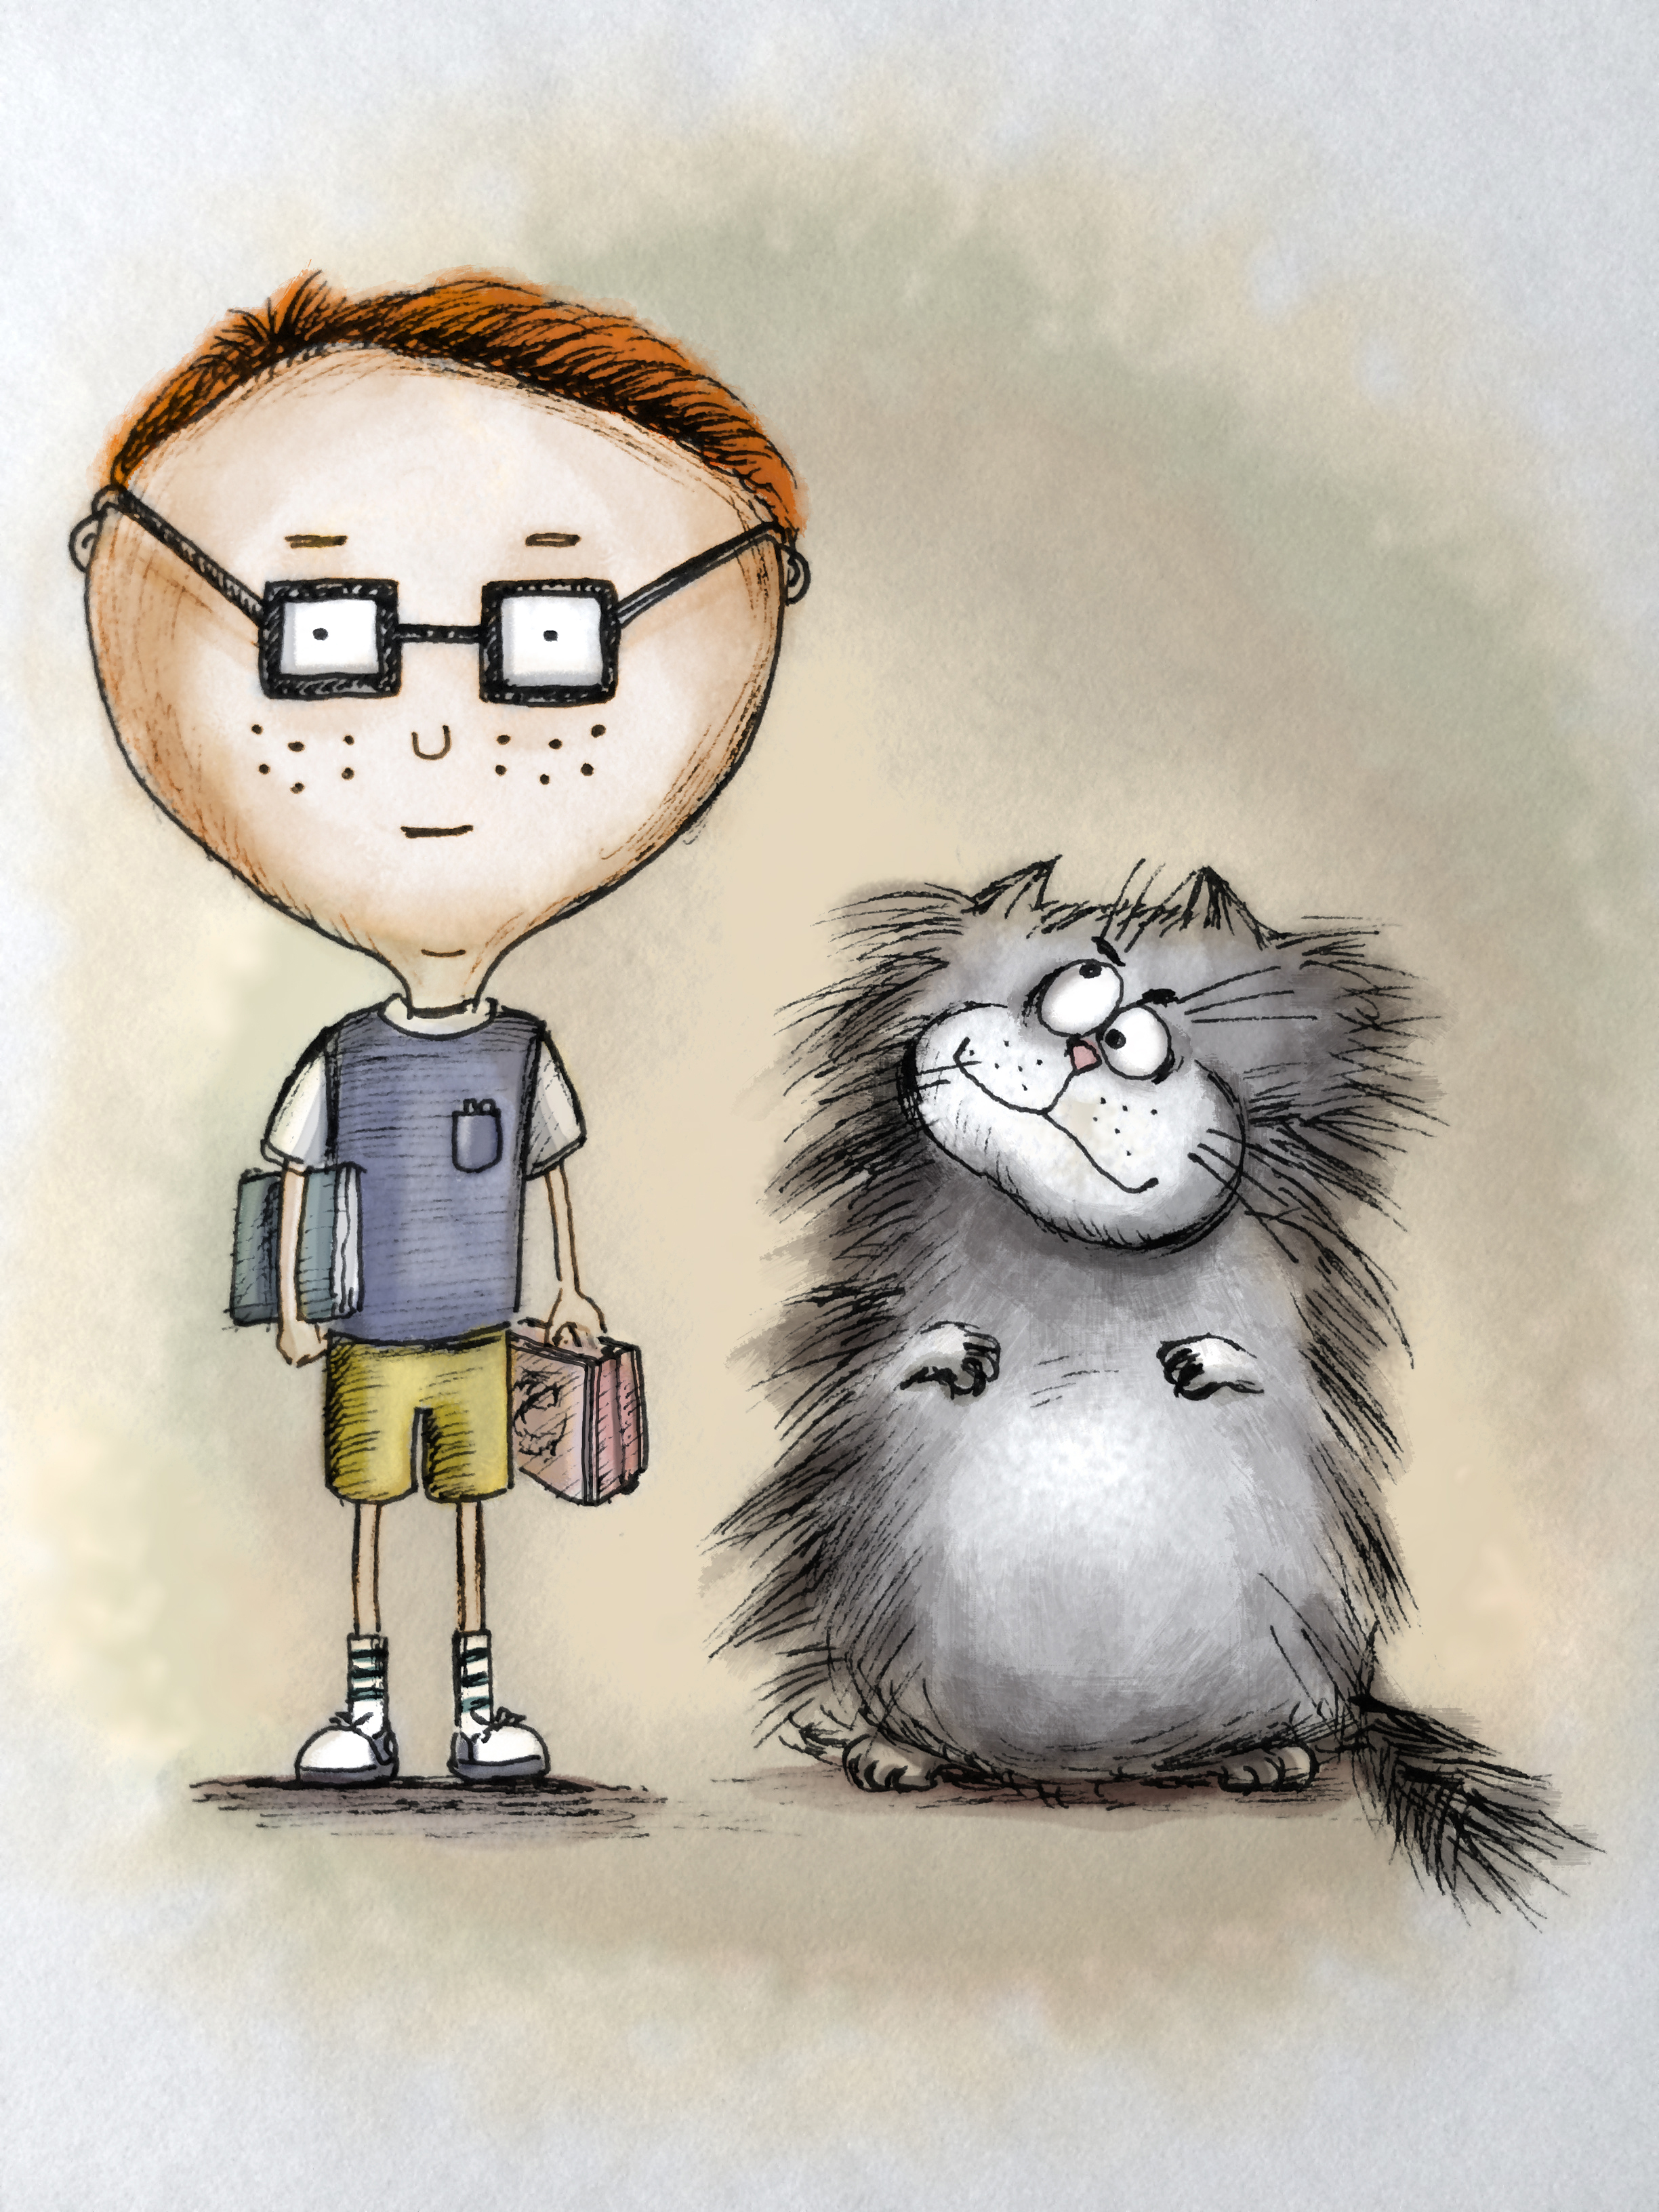 The boy and his mischievous cat.